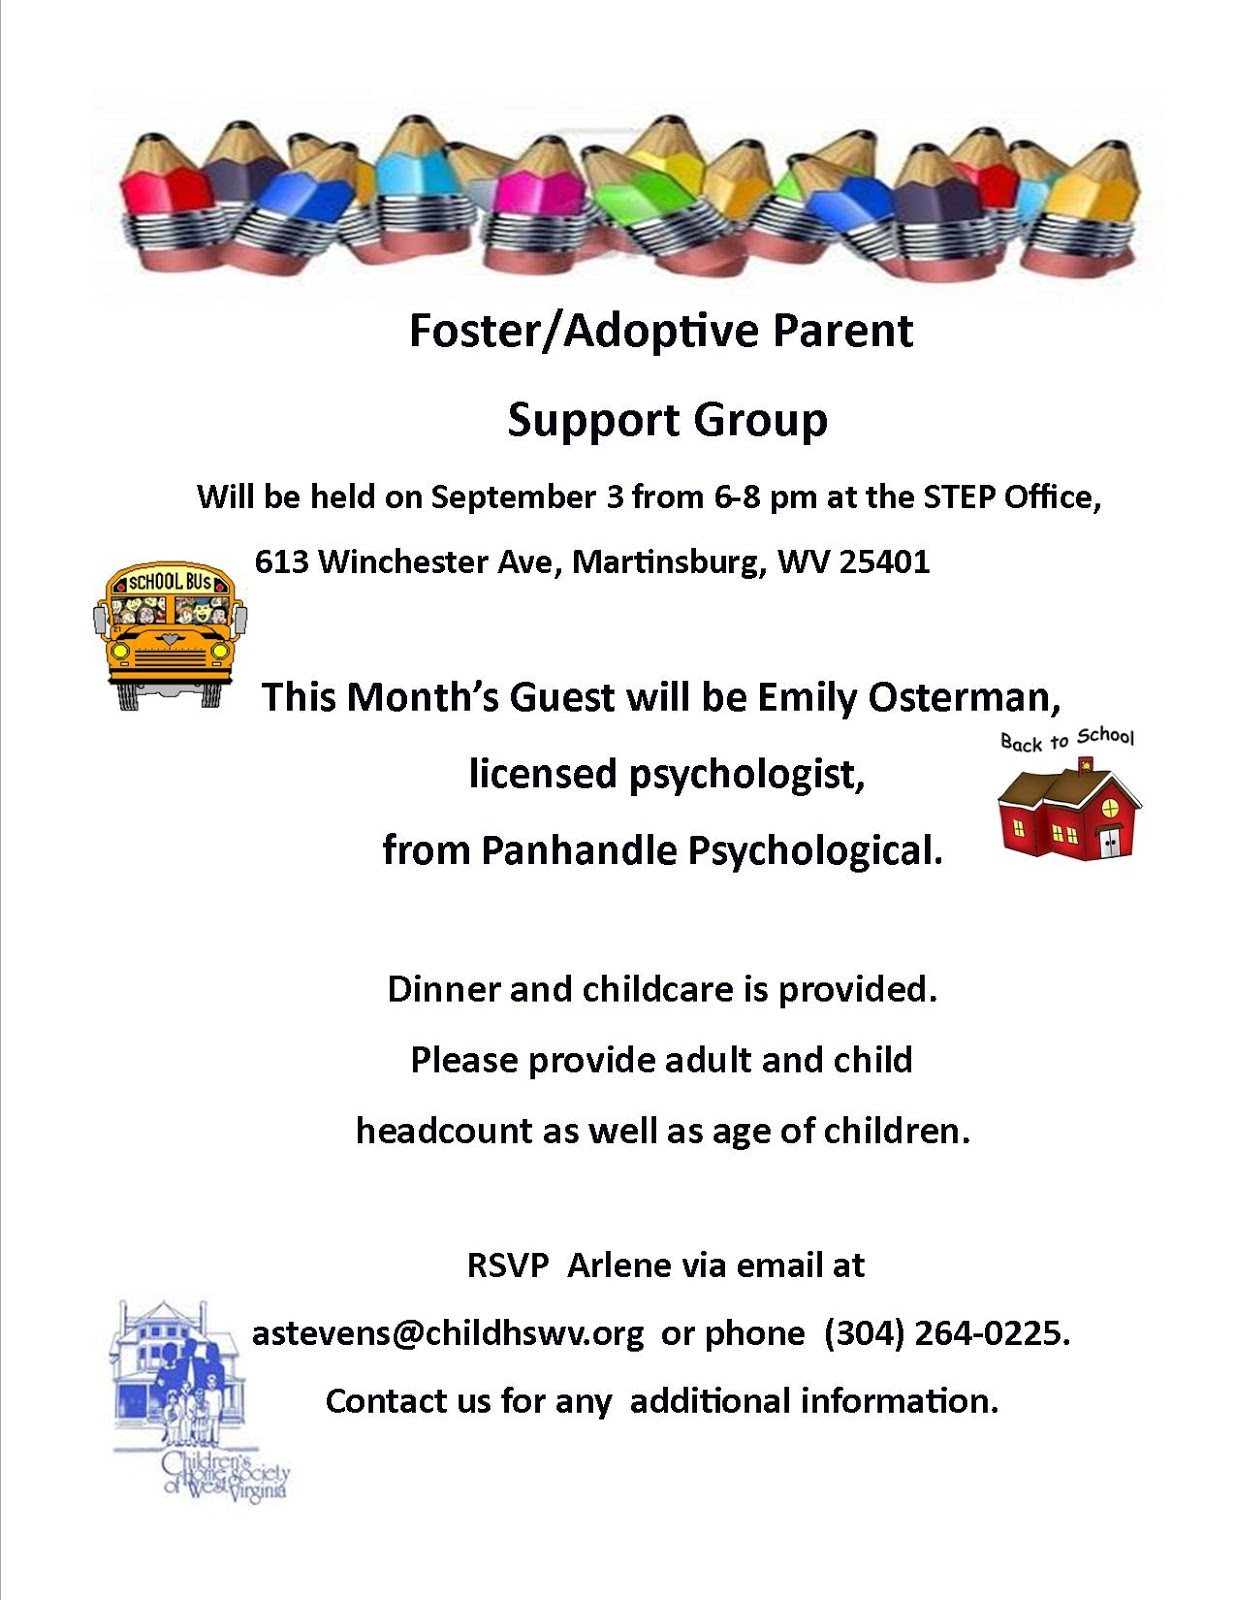 Wv colored childrens home - September Foster Adoptive Parent Support Group